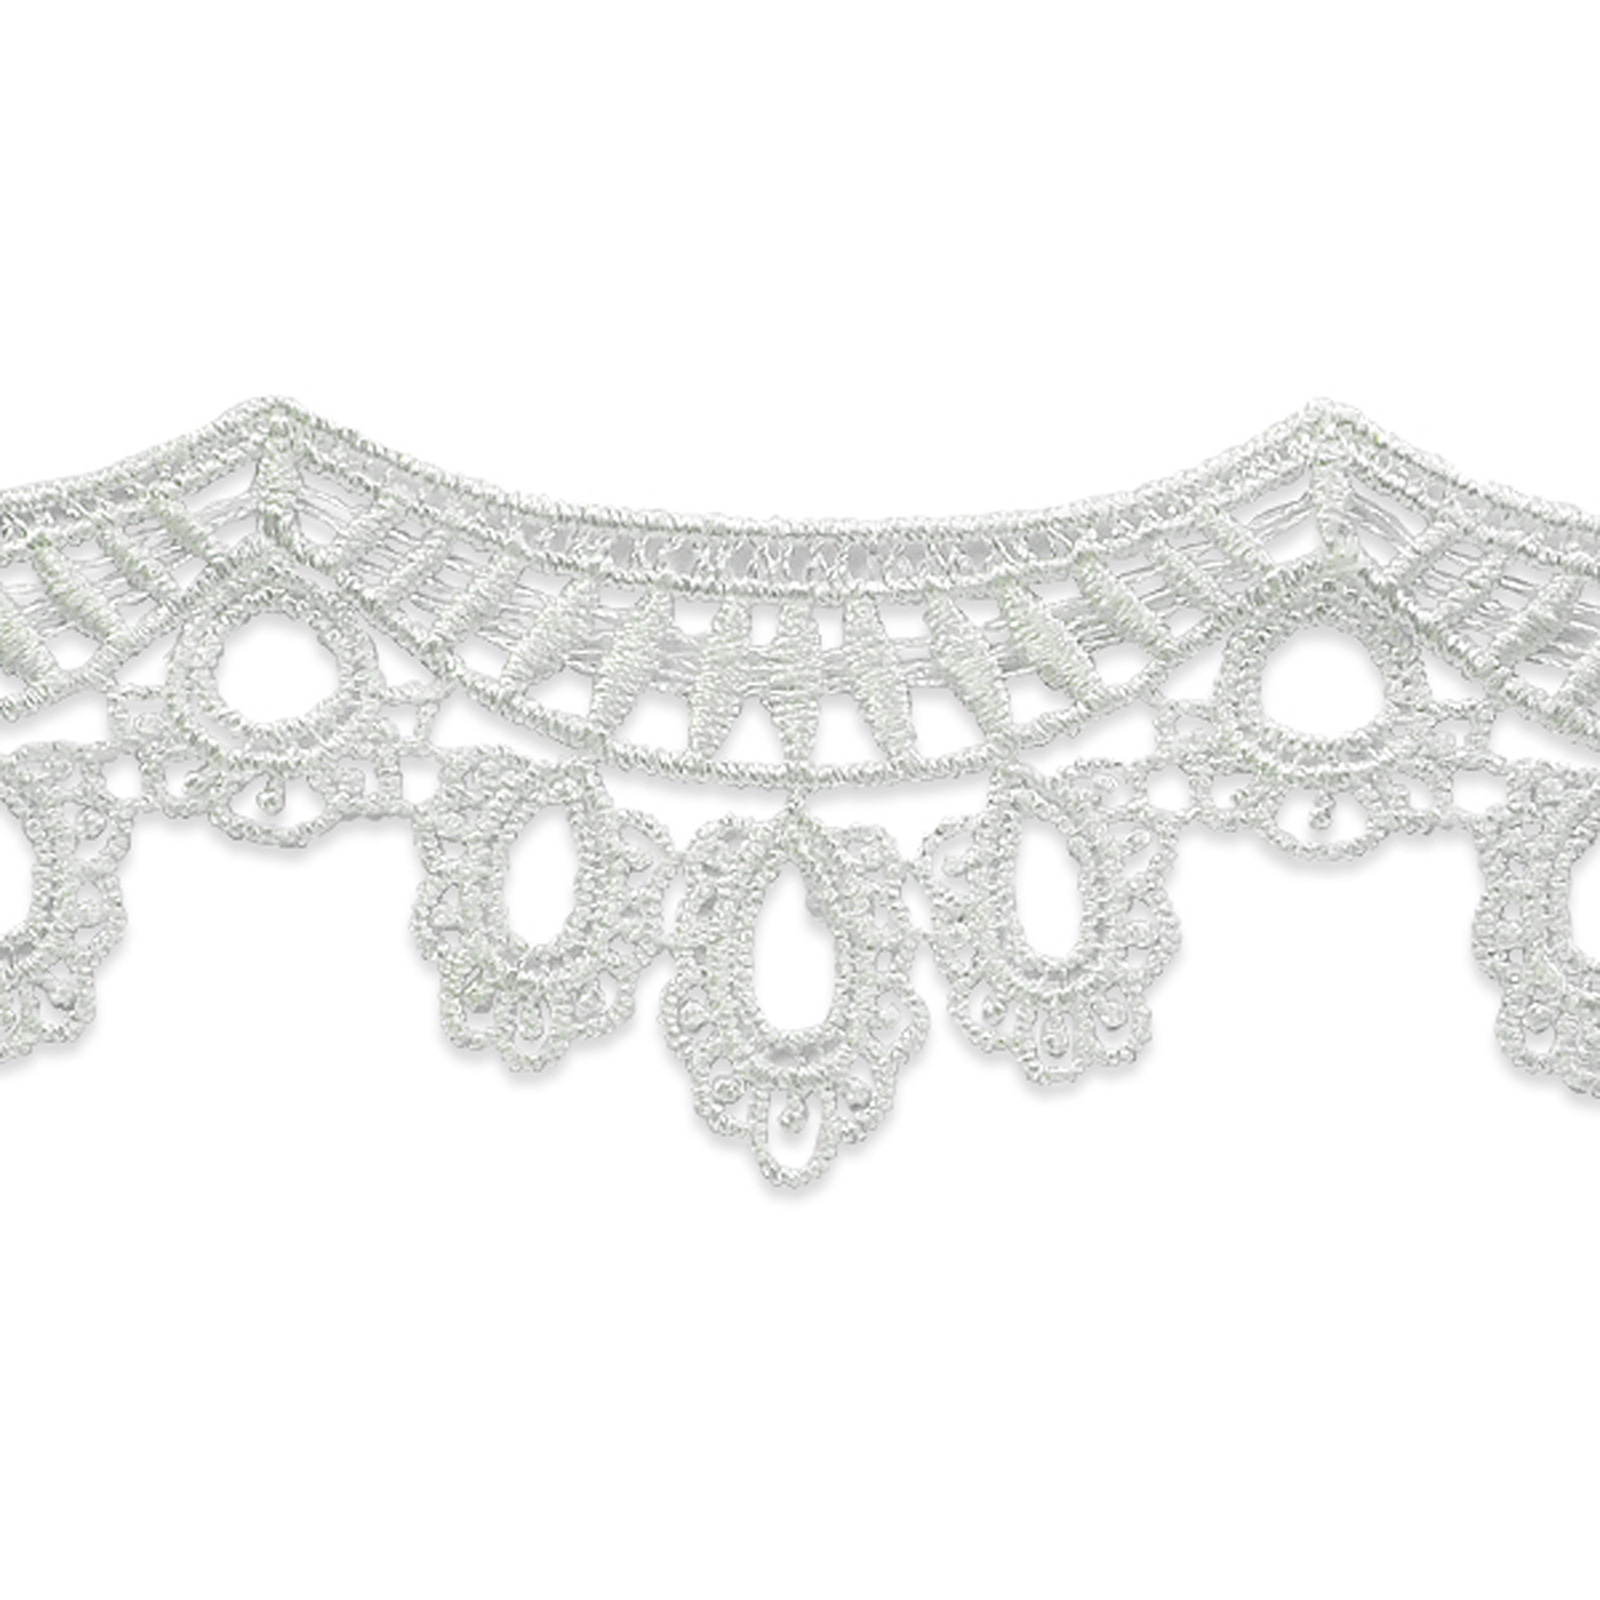 2 1/4'' Lori Lace Trim Natural by Expo in USA